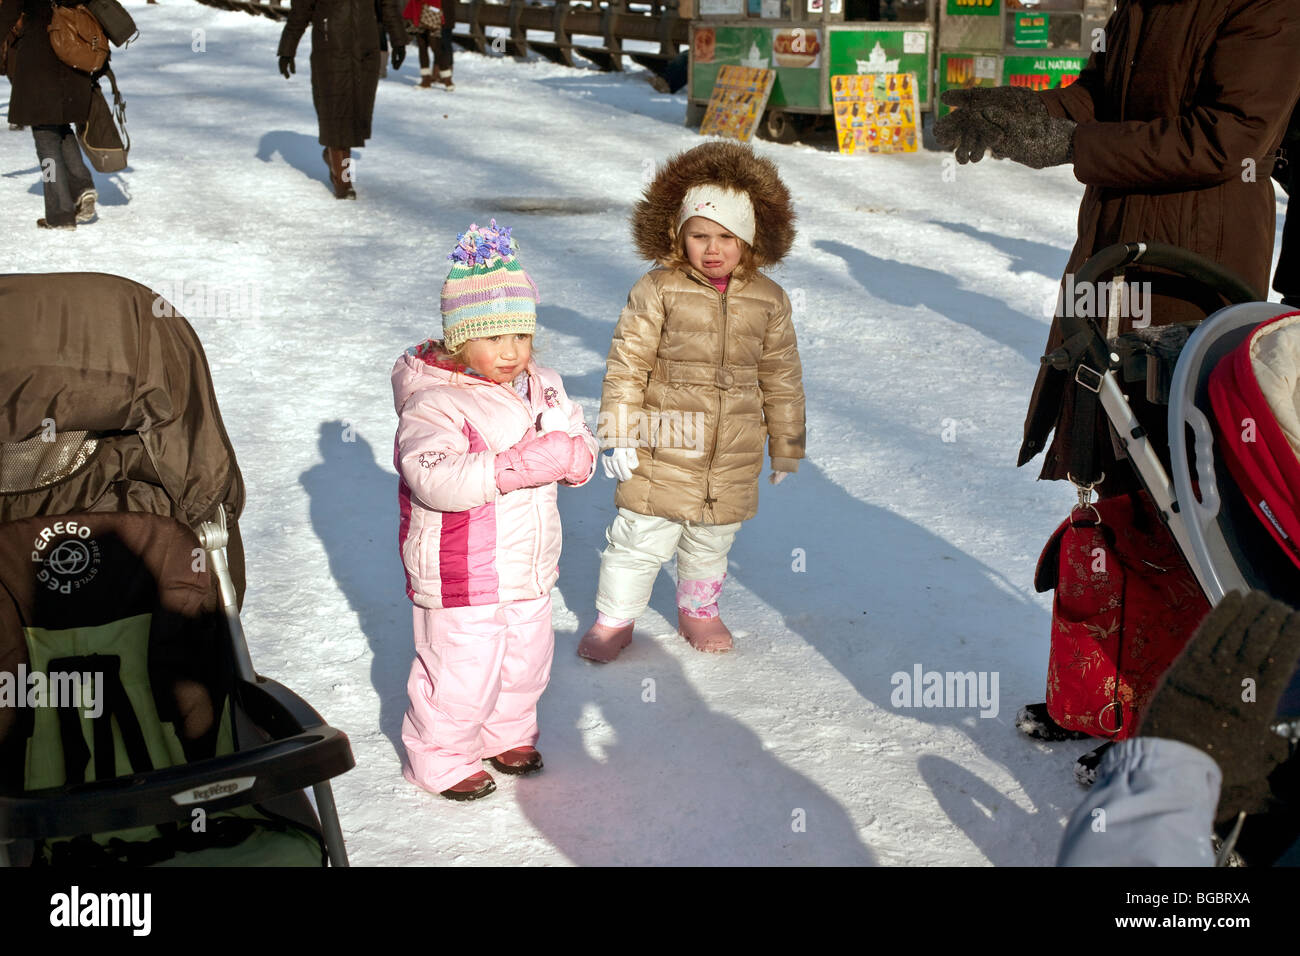 two bundled up pretty little girls, one of them very unhappy, stop for a picture on a sunny winter day in snowy - Stock Image